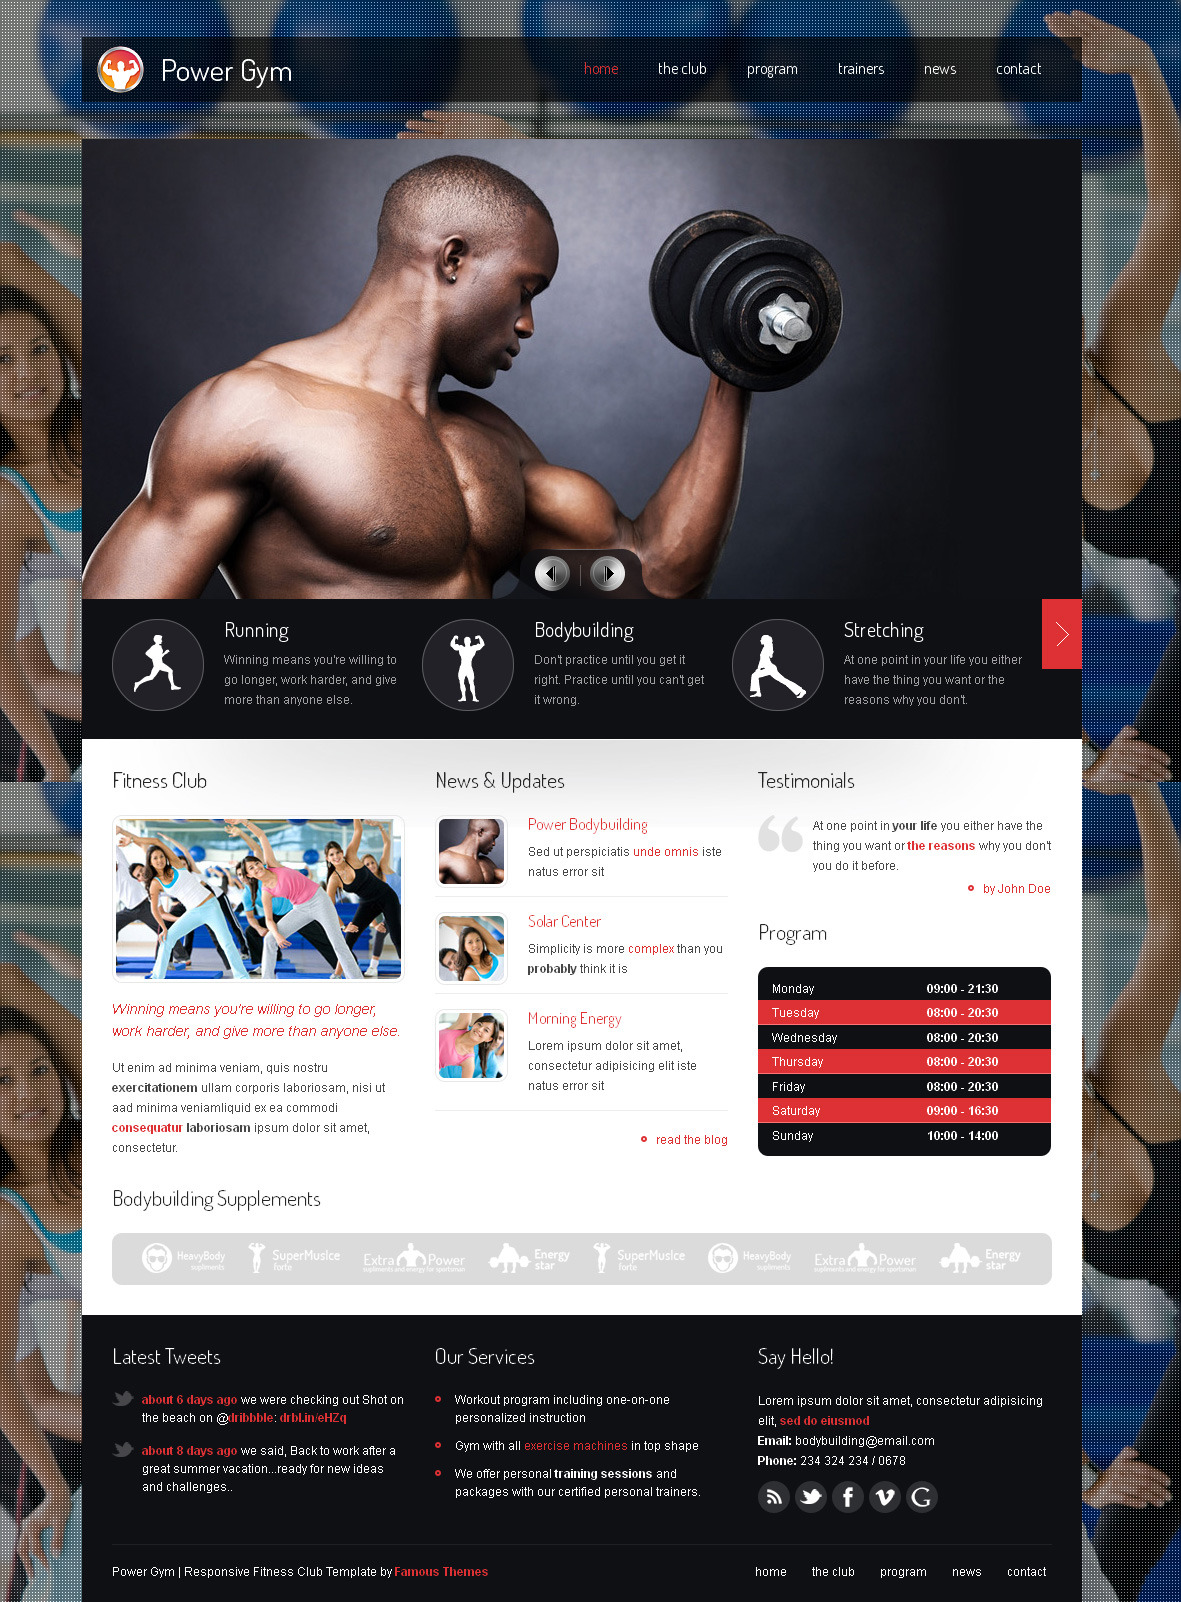 Power Gym - Responsive Wordpress Theme - main page